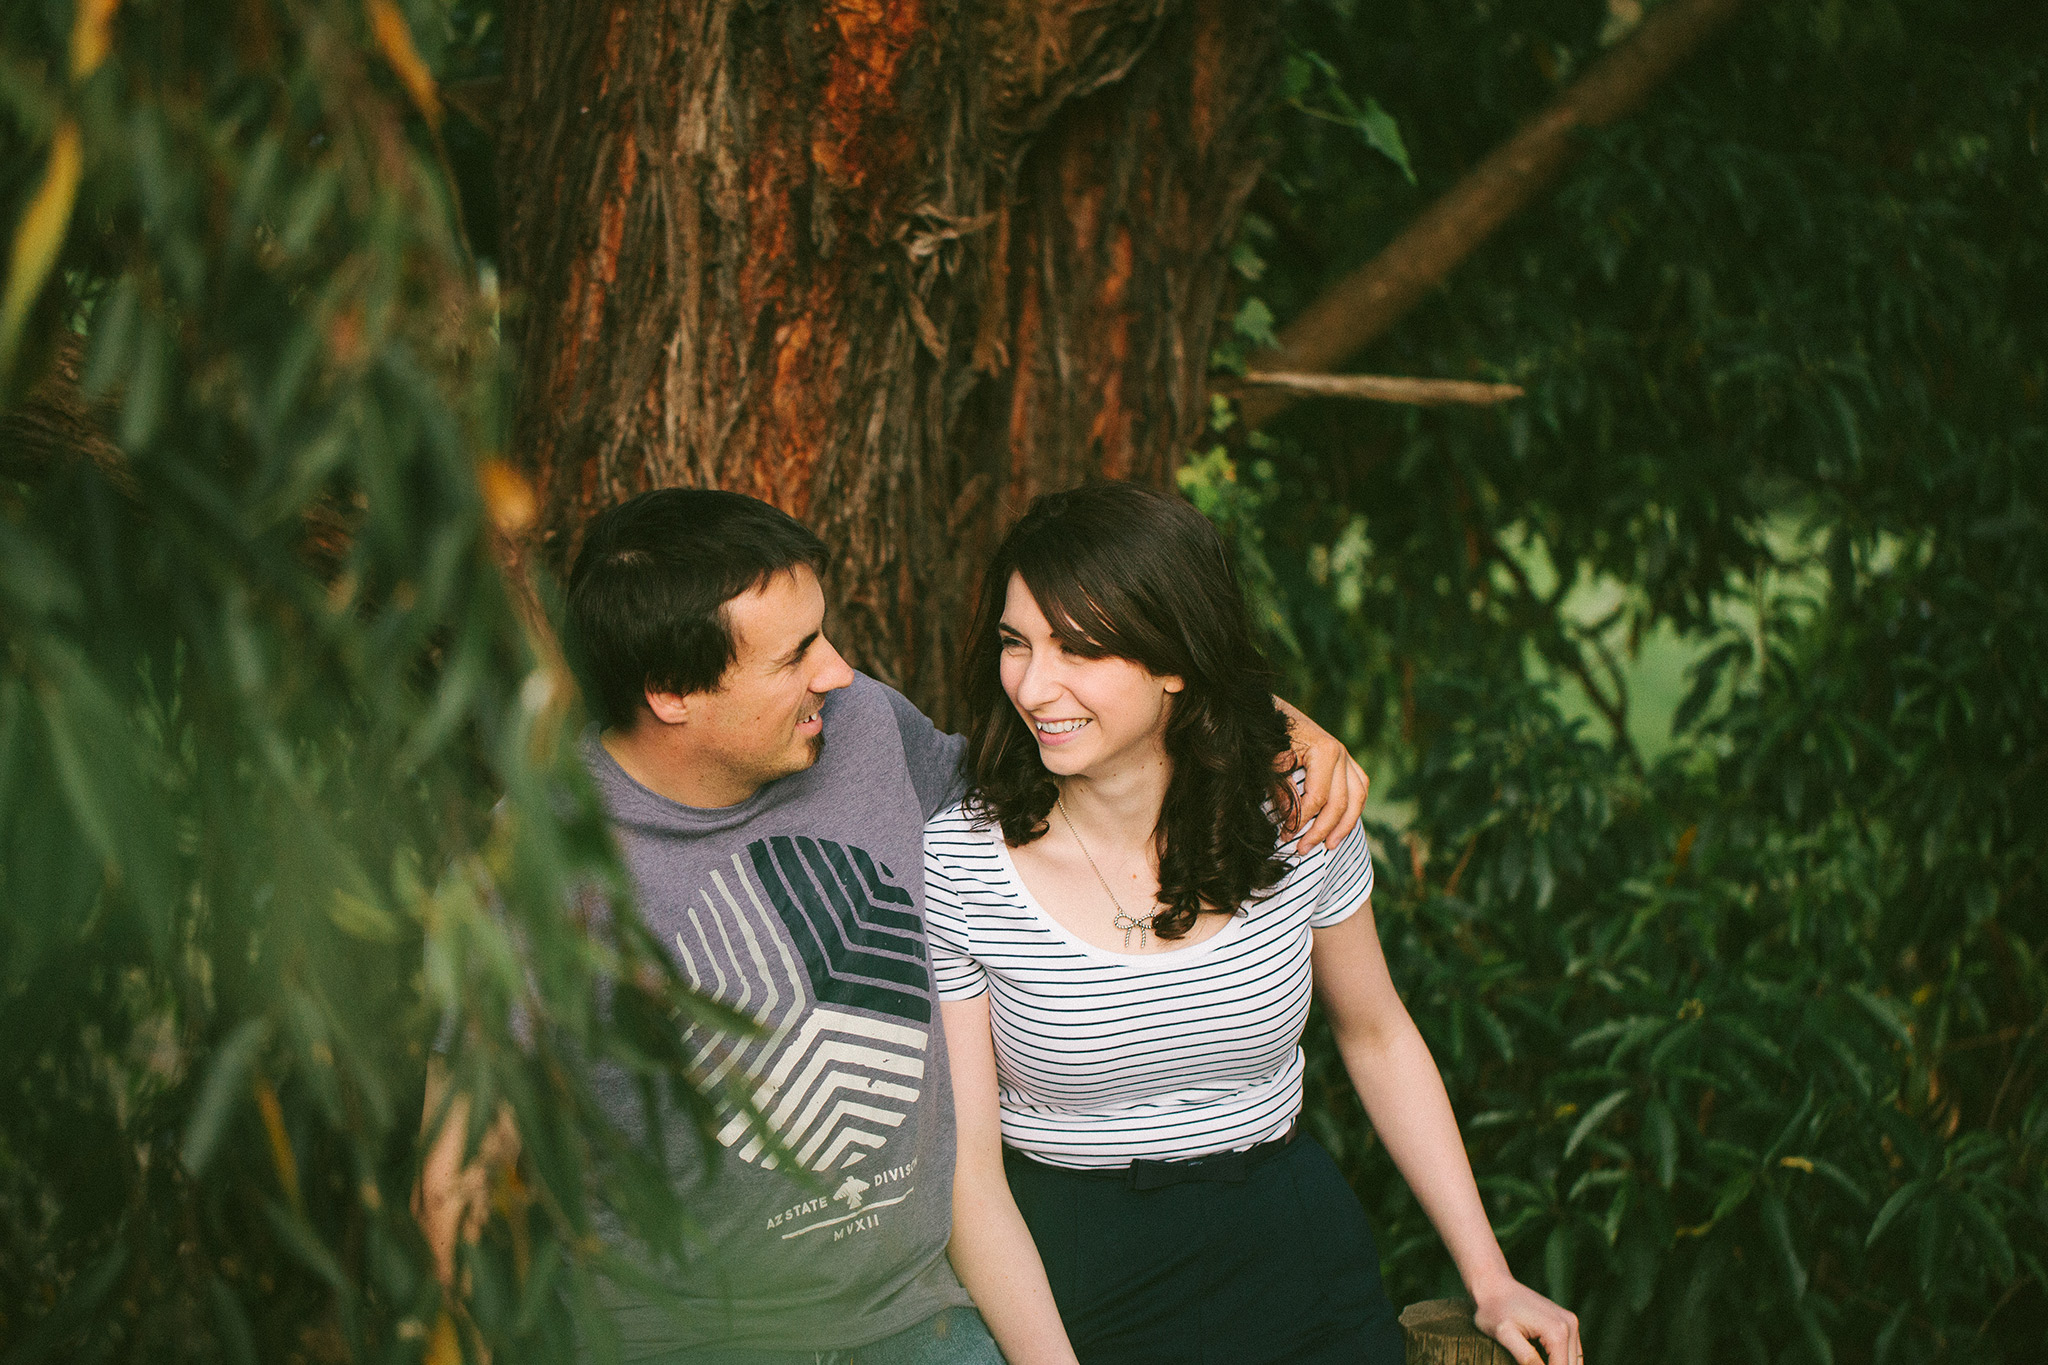 Nadia-Daniel-Melbourne-Quirky-Fun-Relaxed-Engagement-Session-Wedding-Photography_25